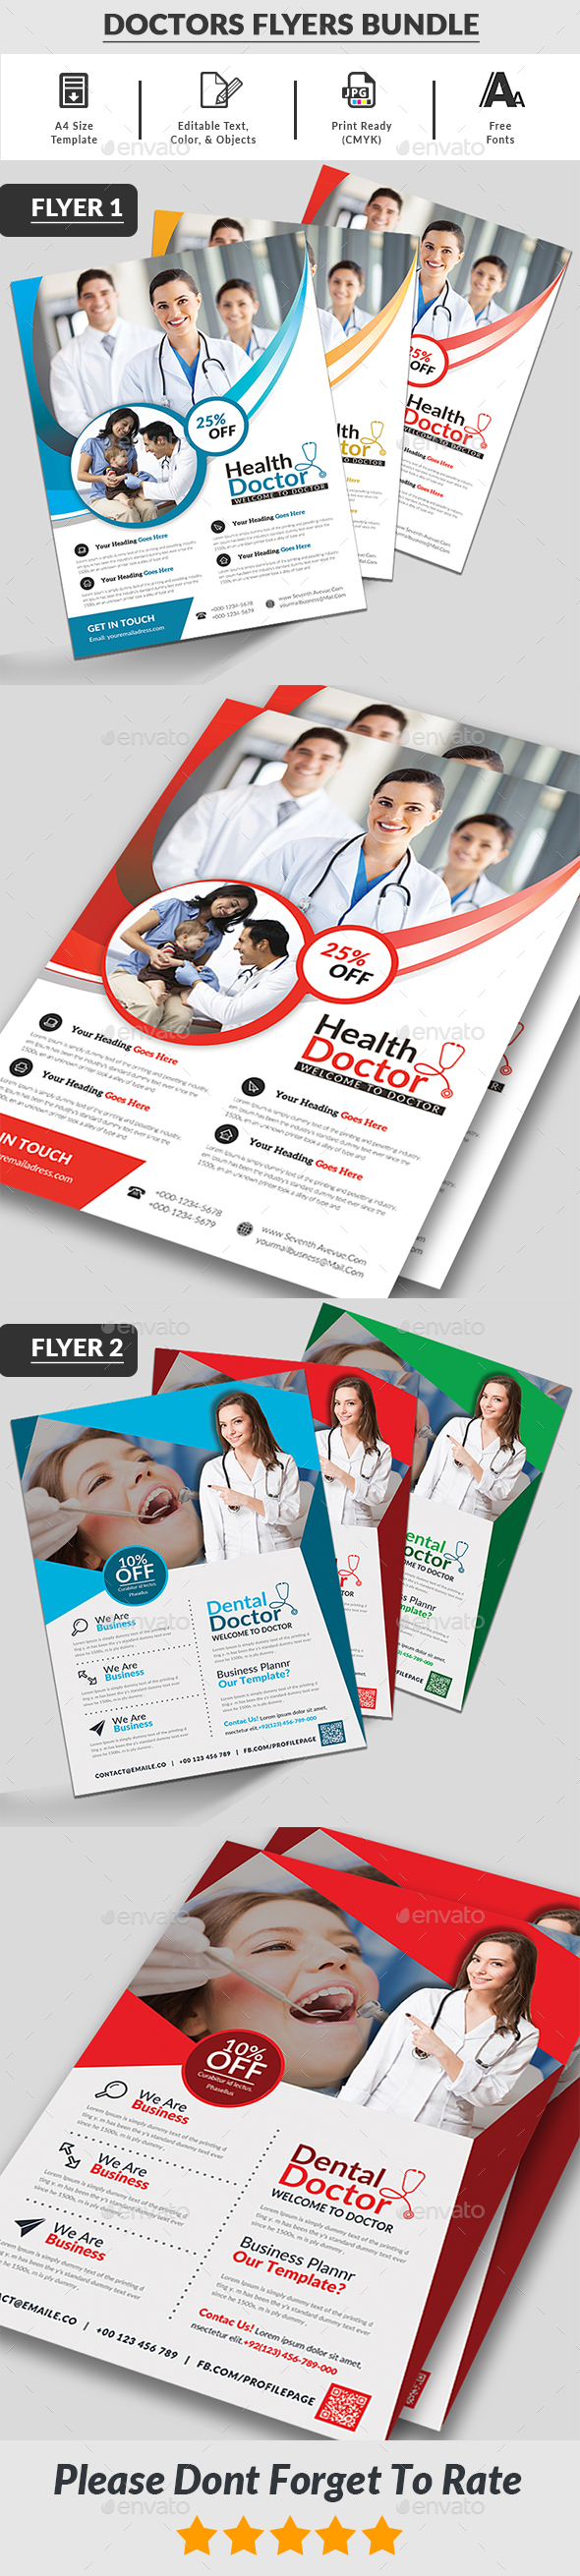 Doctors Flyers Bundle - Corporate Flyers